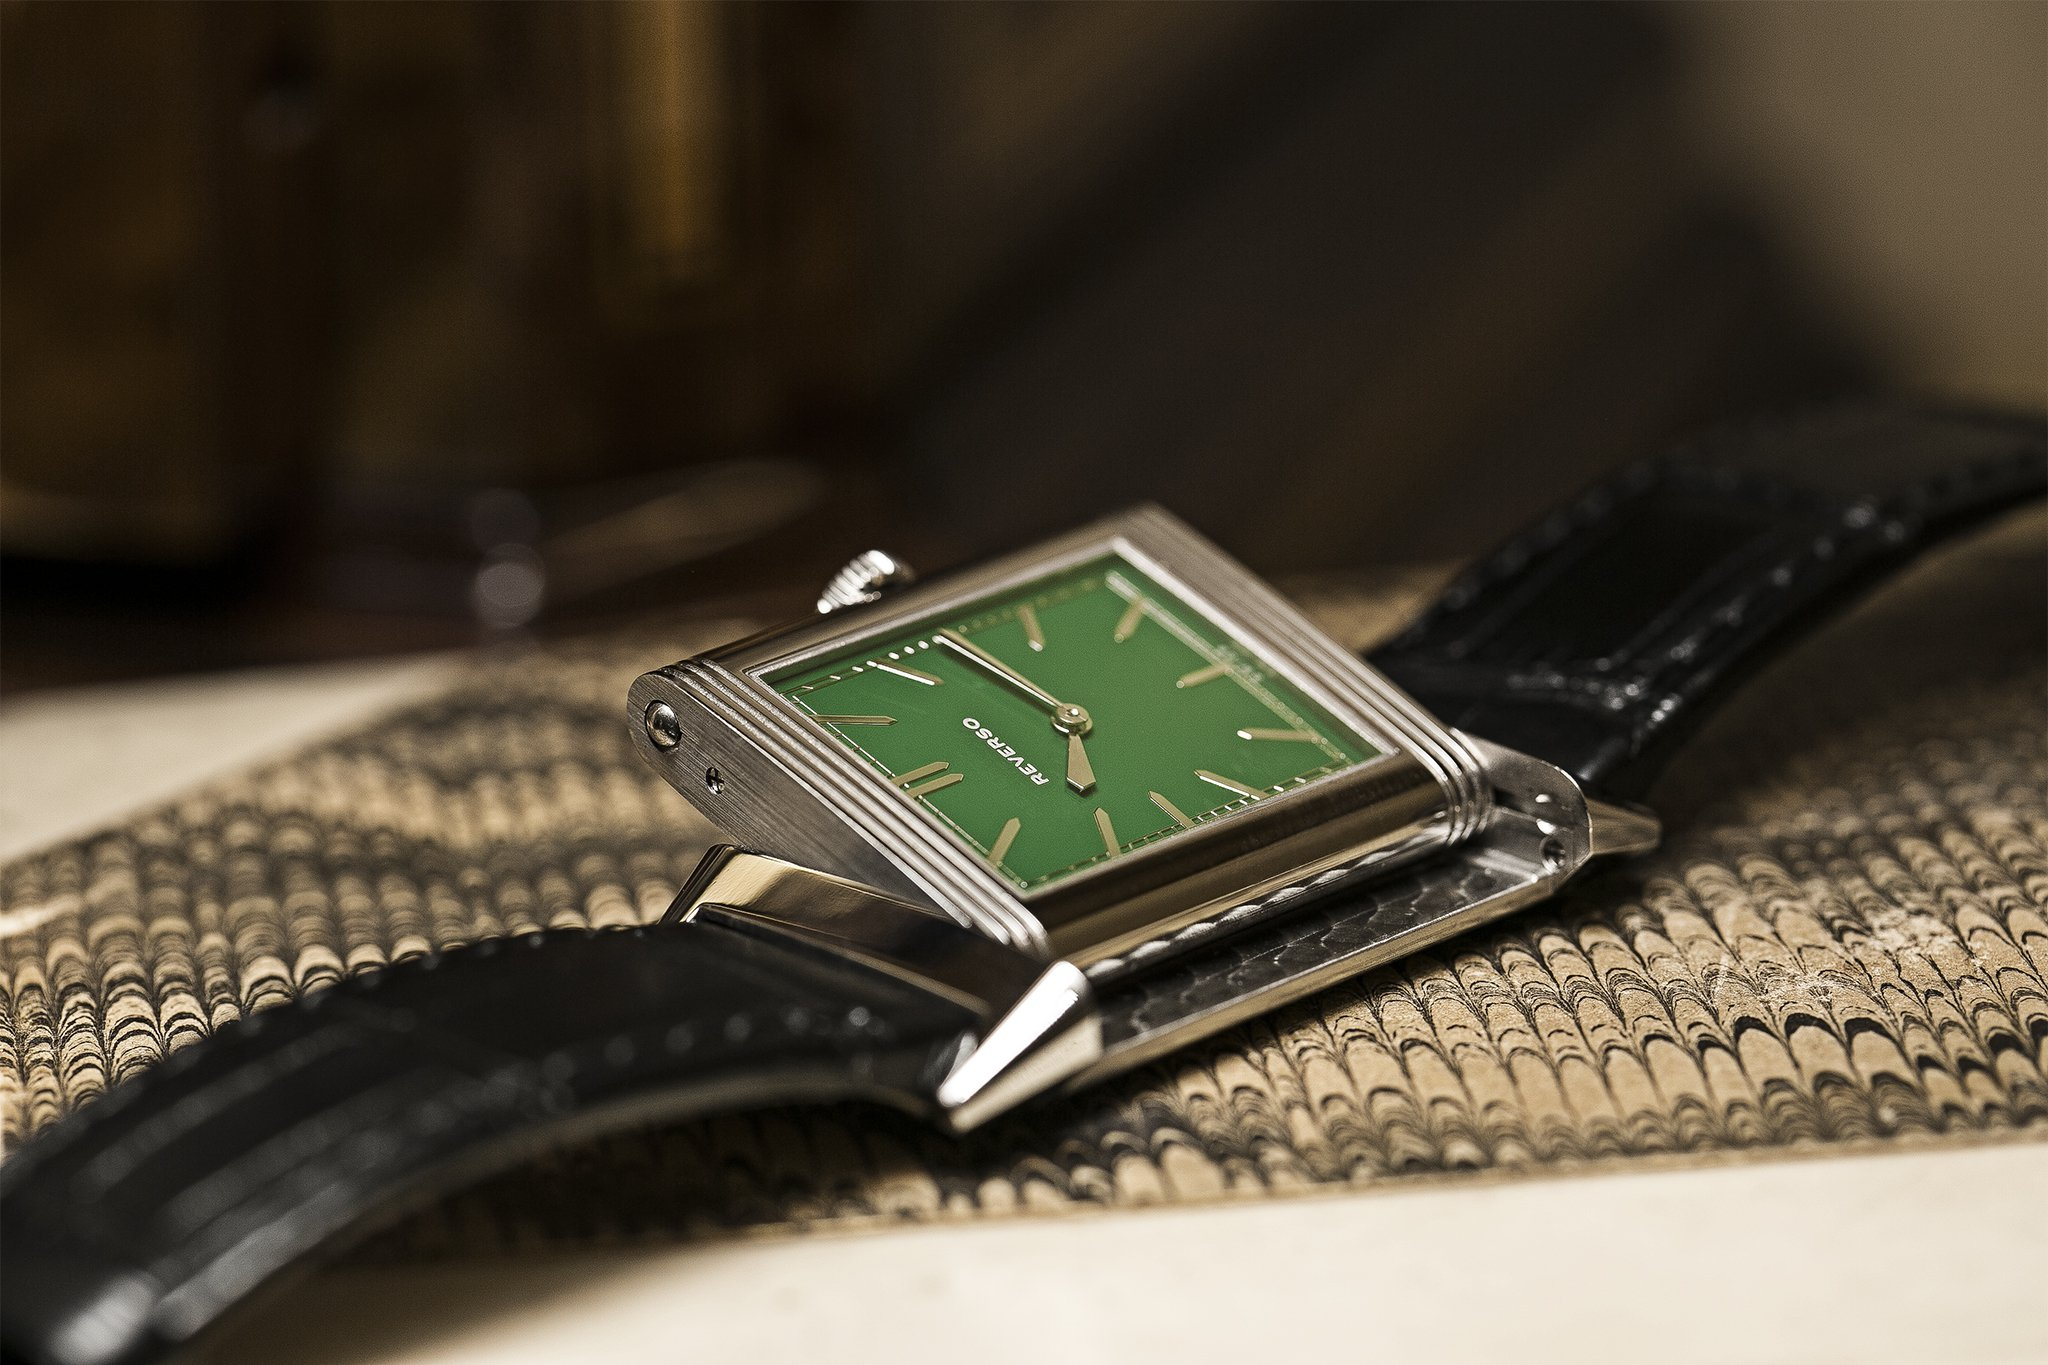 Jaeger-LeCoultre-Green-Grande-Reverso-Ultra-Thin-1931-Watch-For-London-Open.jpg